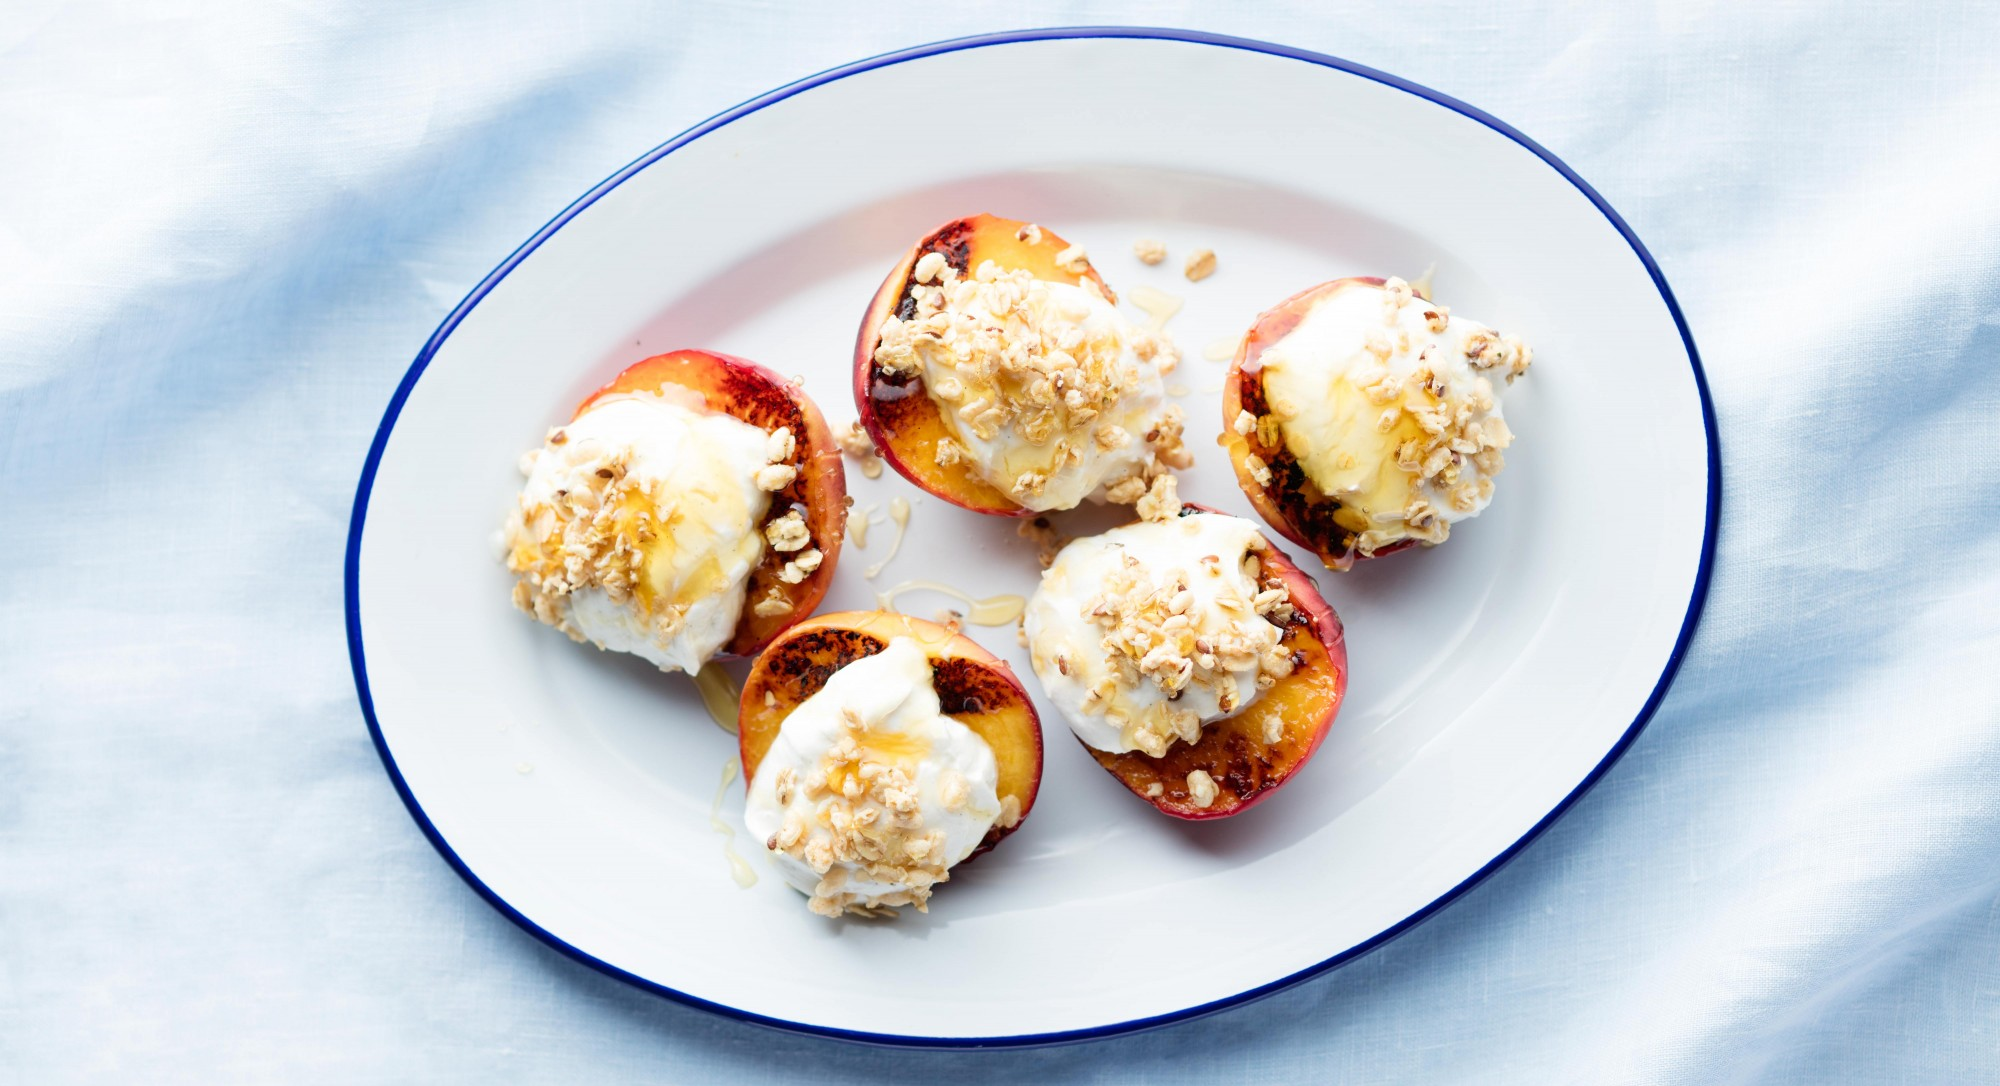 Grilled Peaches With Yogurt and Granola Recipe